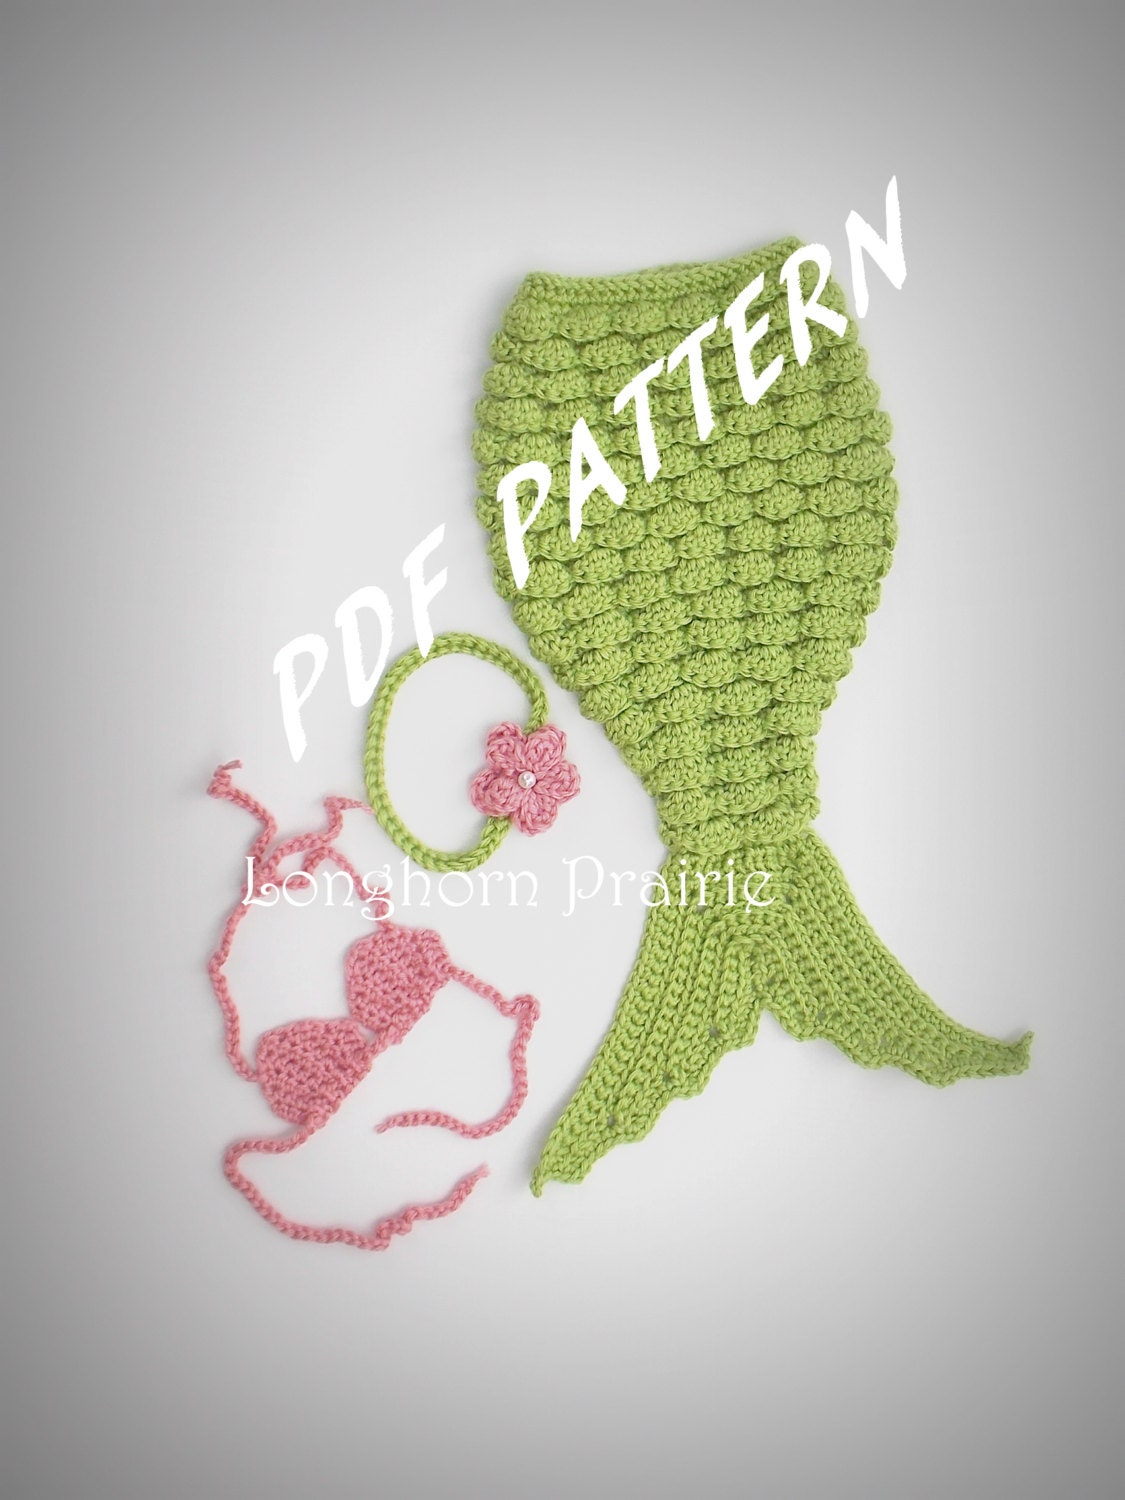 Crochet Patterns Mermaid : Mermaid Photography Prop Set crochet PATTERN by LonghornPrairie